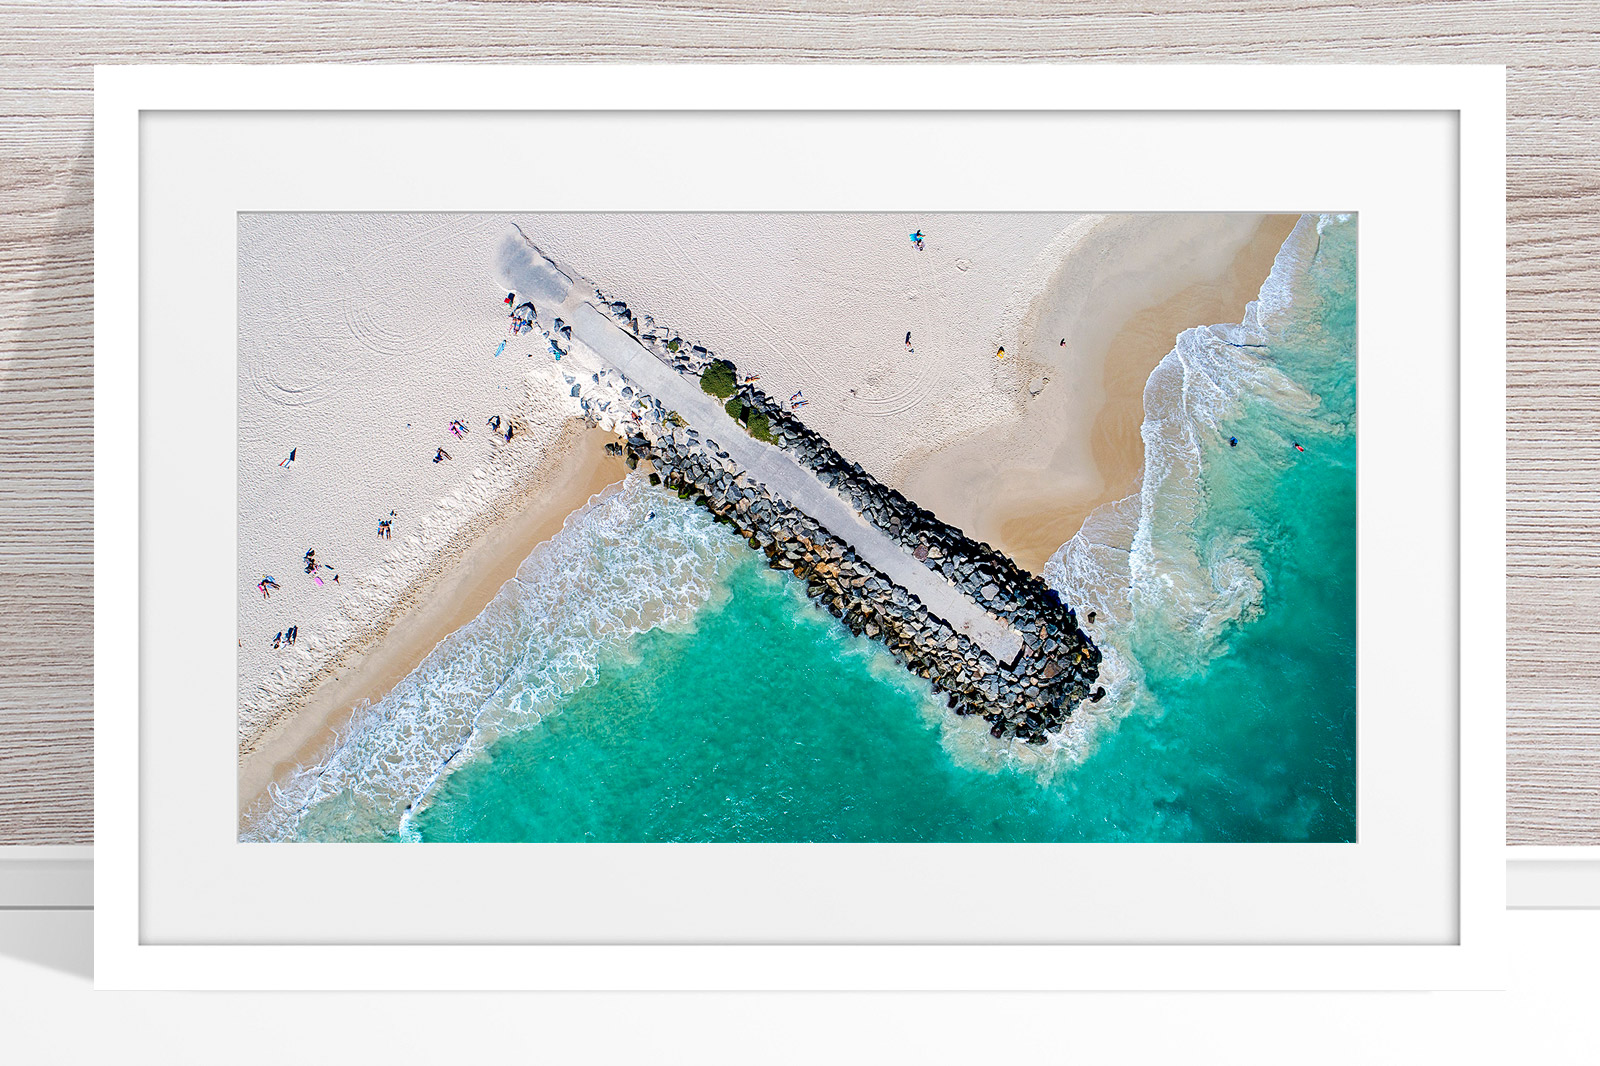 021 - Jason Mazur - 'City Beach Groyne' White Frame